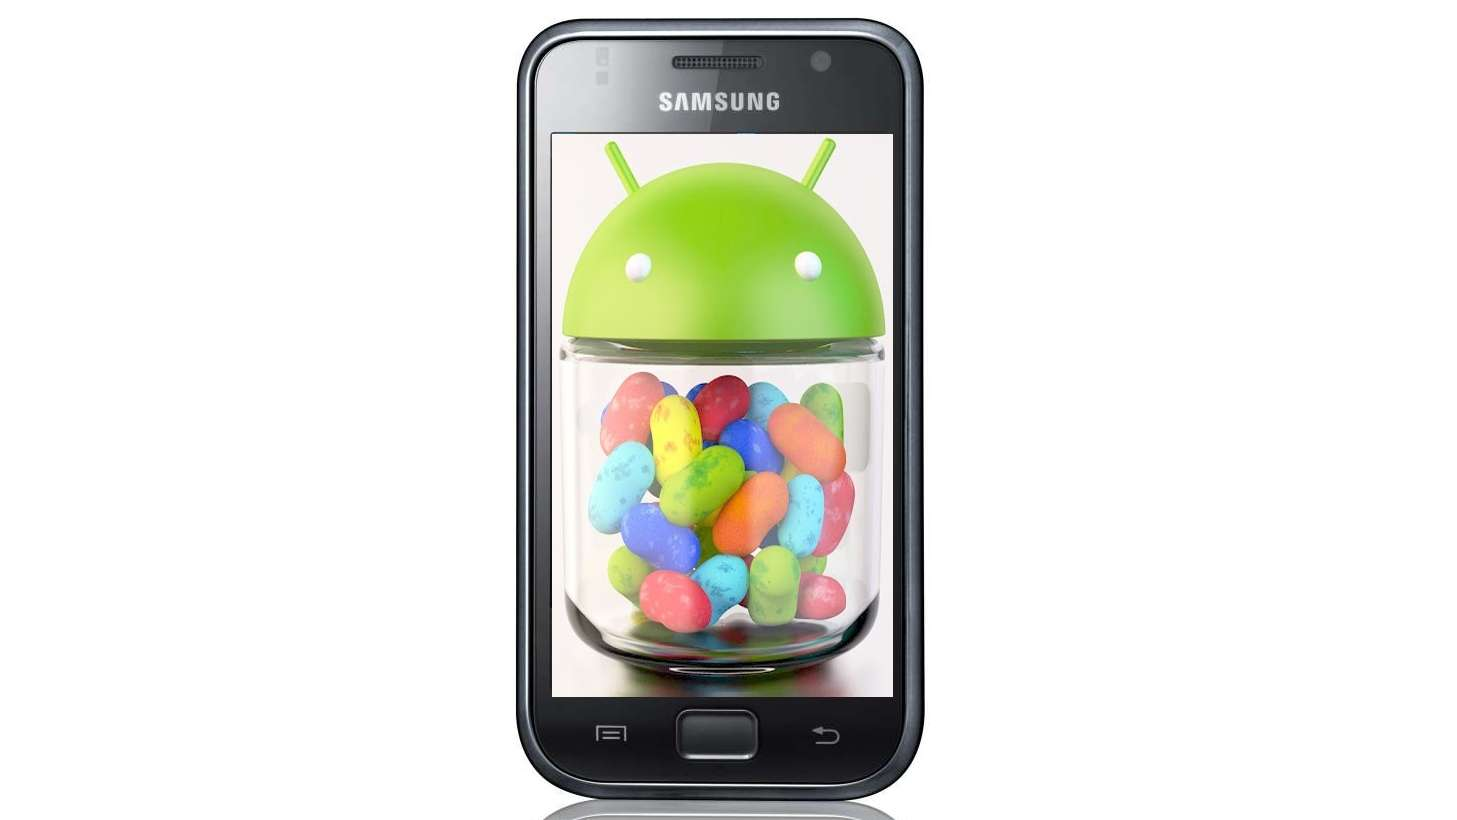 El Android 4.2 Jelly Bean en dispositivos Samsung